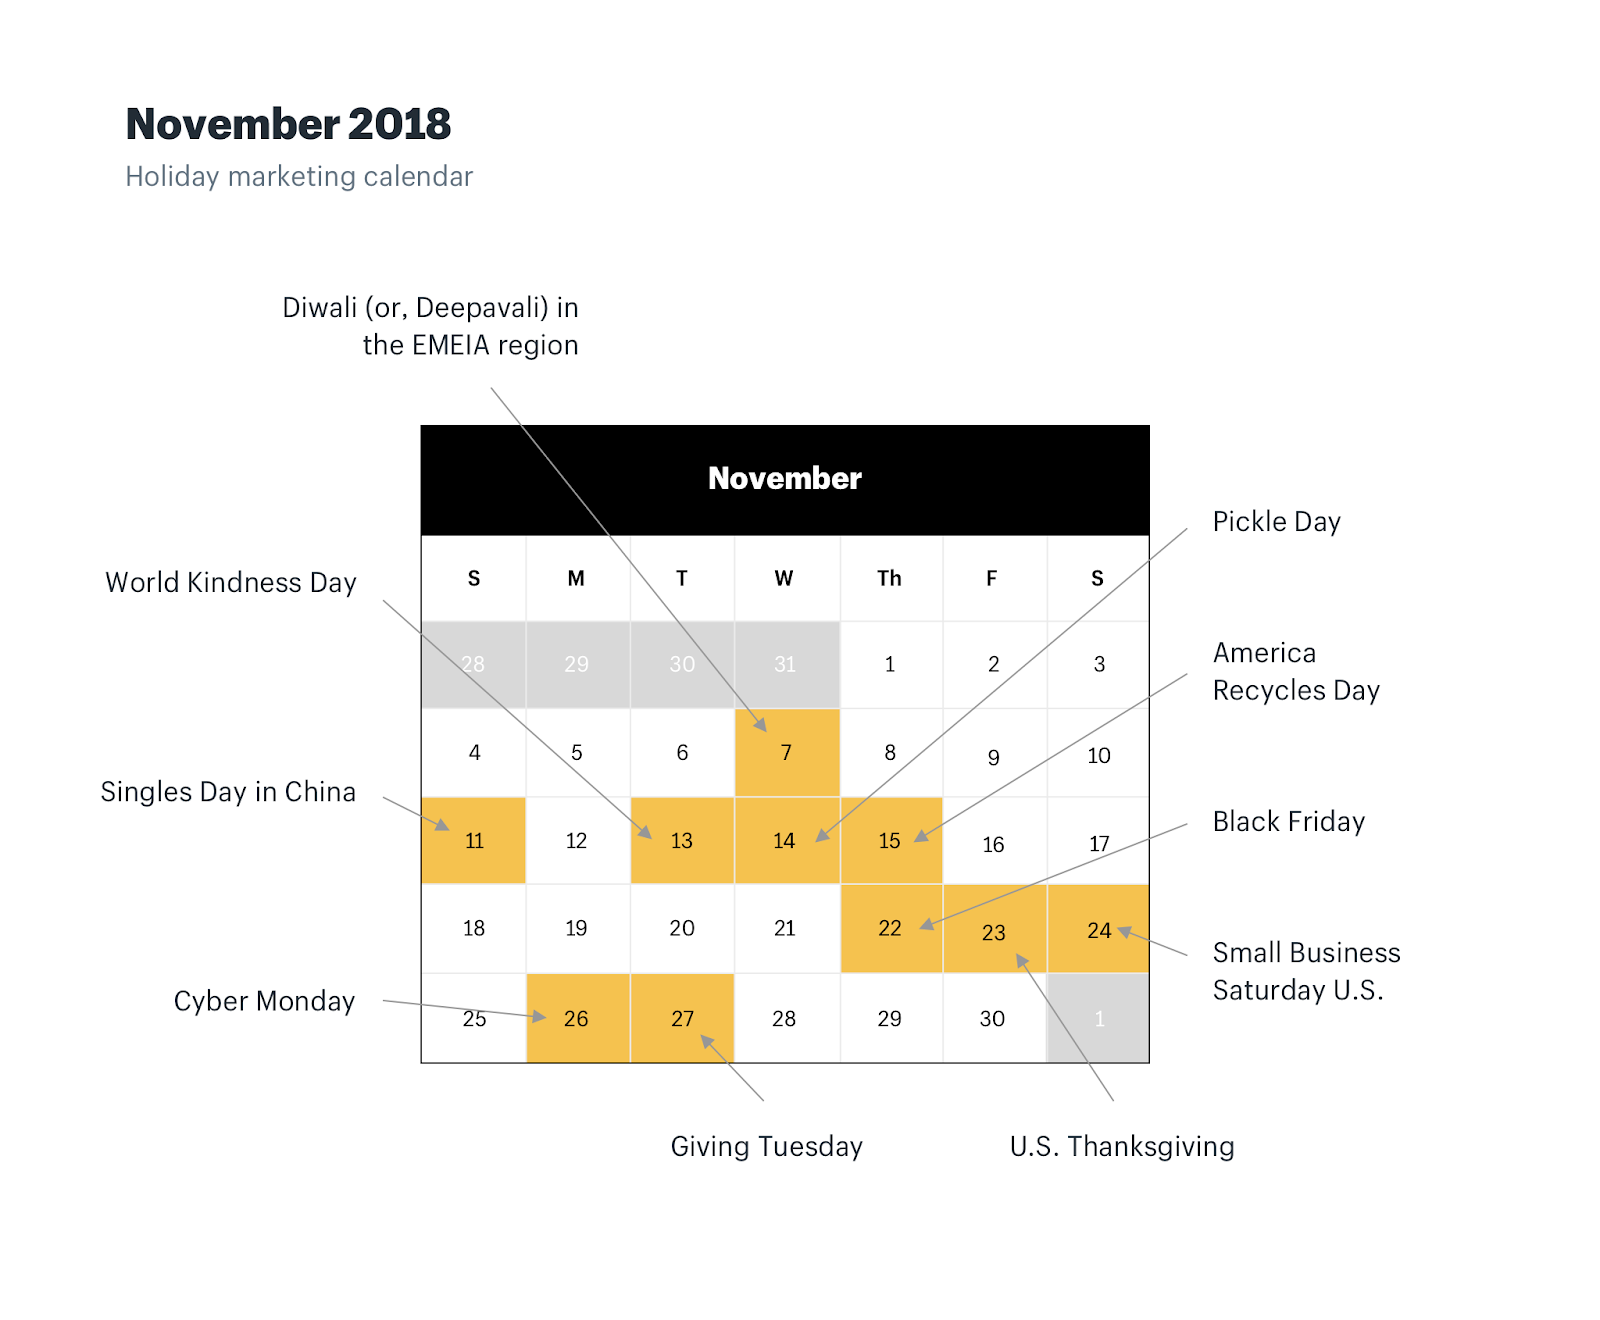 November 2018 holiday marketing calendar